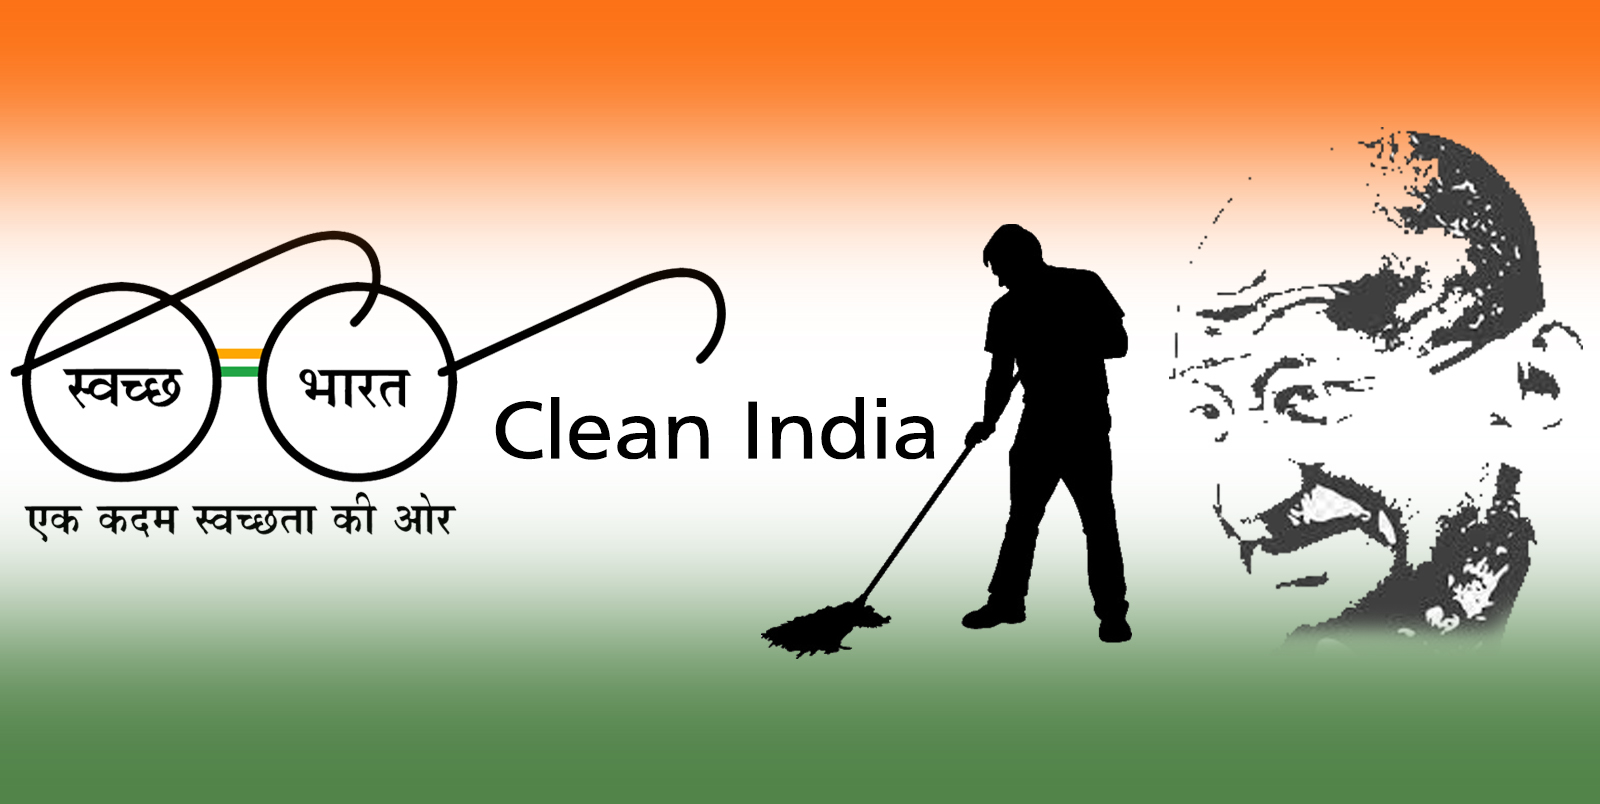 Clean India @Max Cleaner